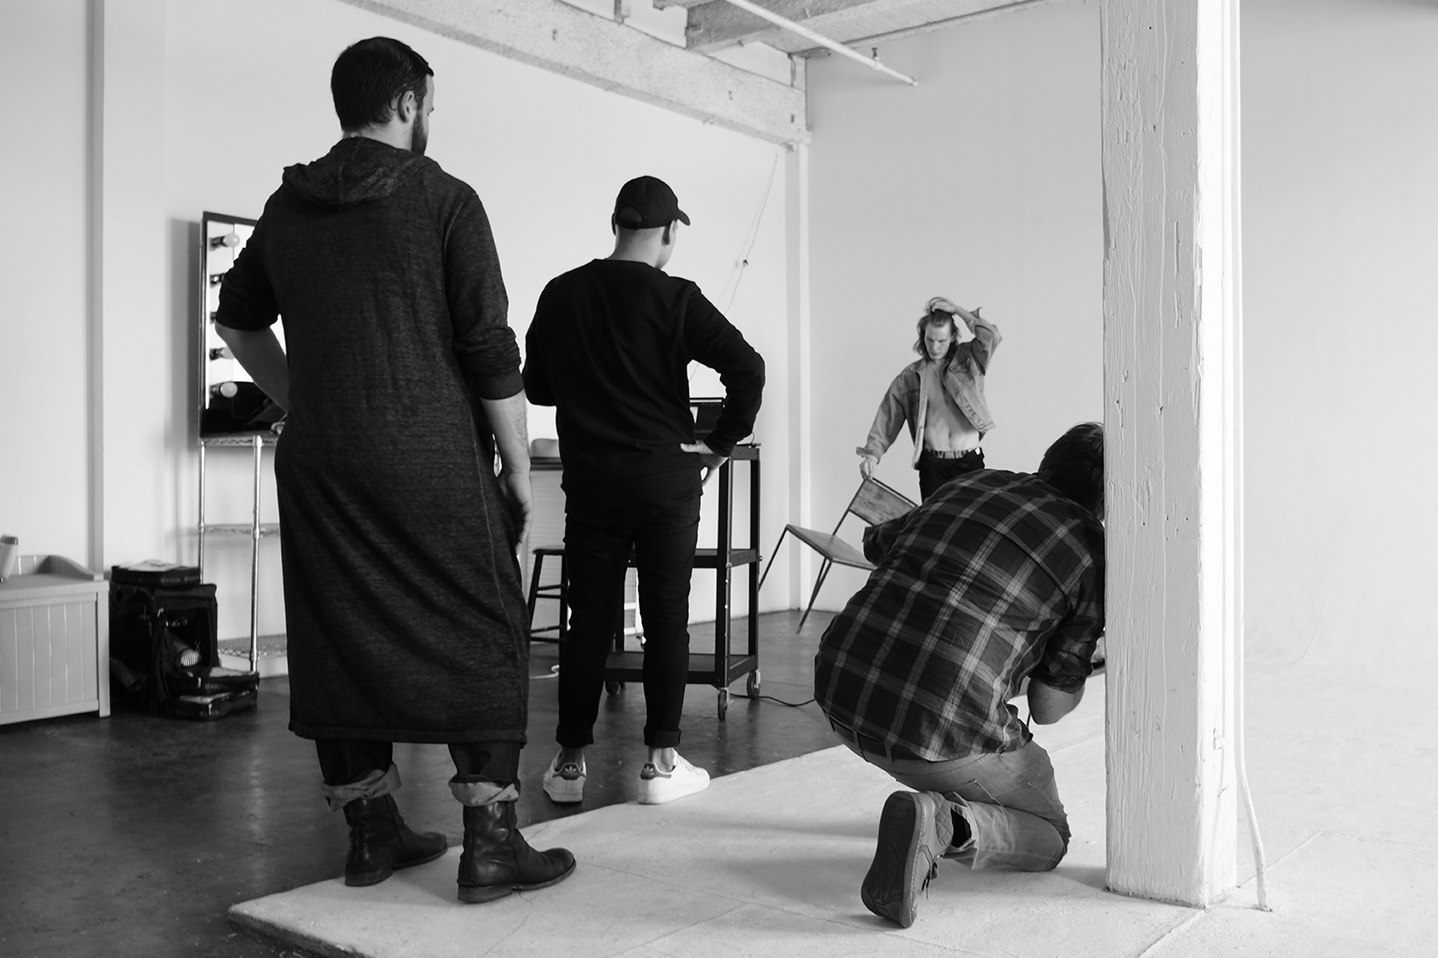 New-York-Fashion-Photographer-Grayson-Hoffman-On-Set-Behind-The-Scenes-Studio-On-Location-Black-And-White-13